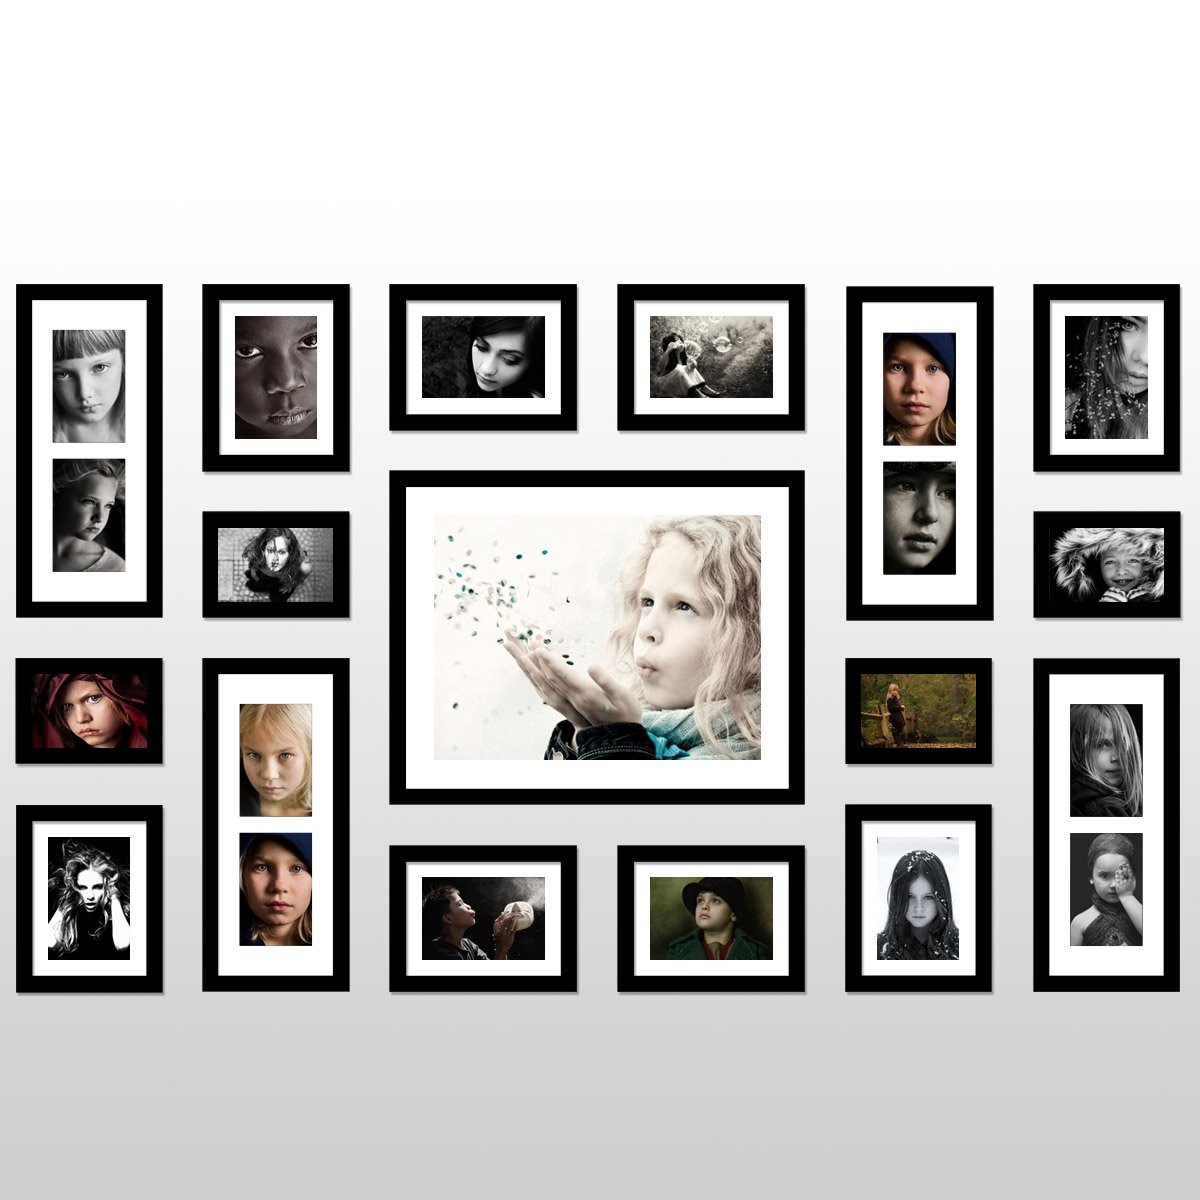 Amazon yanksmart wall hanging art home decor modern gallery amazon yanksmart wall hanging art home decor modern gallery 17 piece wood multi piece photo frame set black x547s jeuxipadfo Images